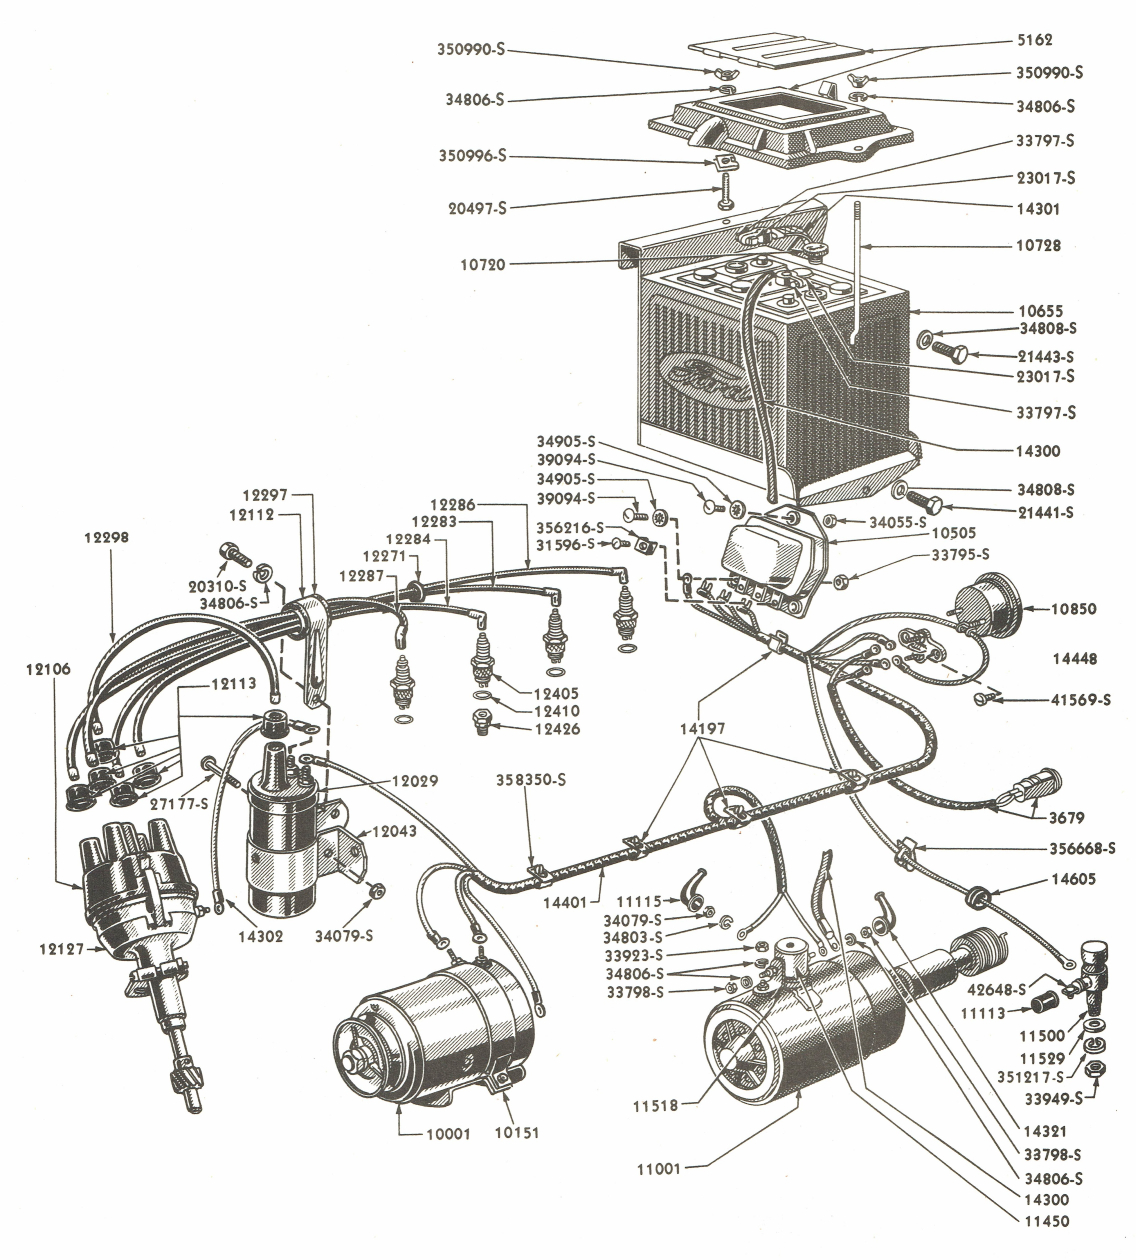 Diagram] Tracor 8N Ford Tractor Wiring Diagram Full Version